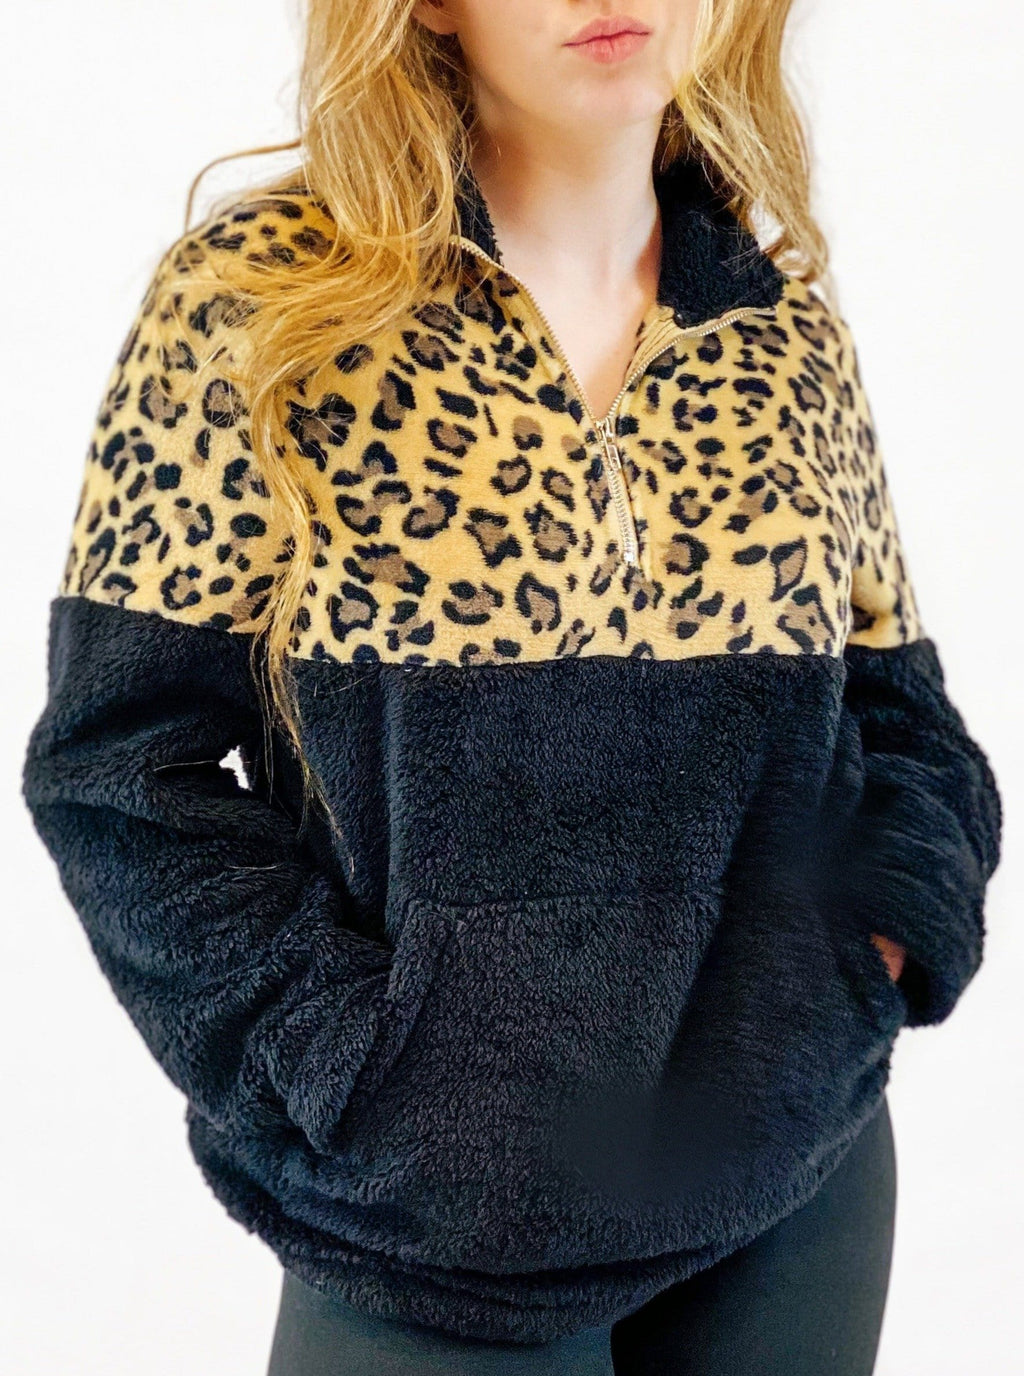 Leopard Fleece Pullover - Black - bigcityboutique